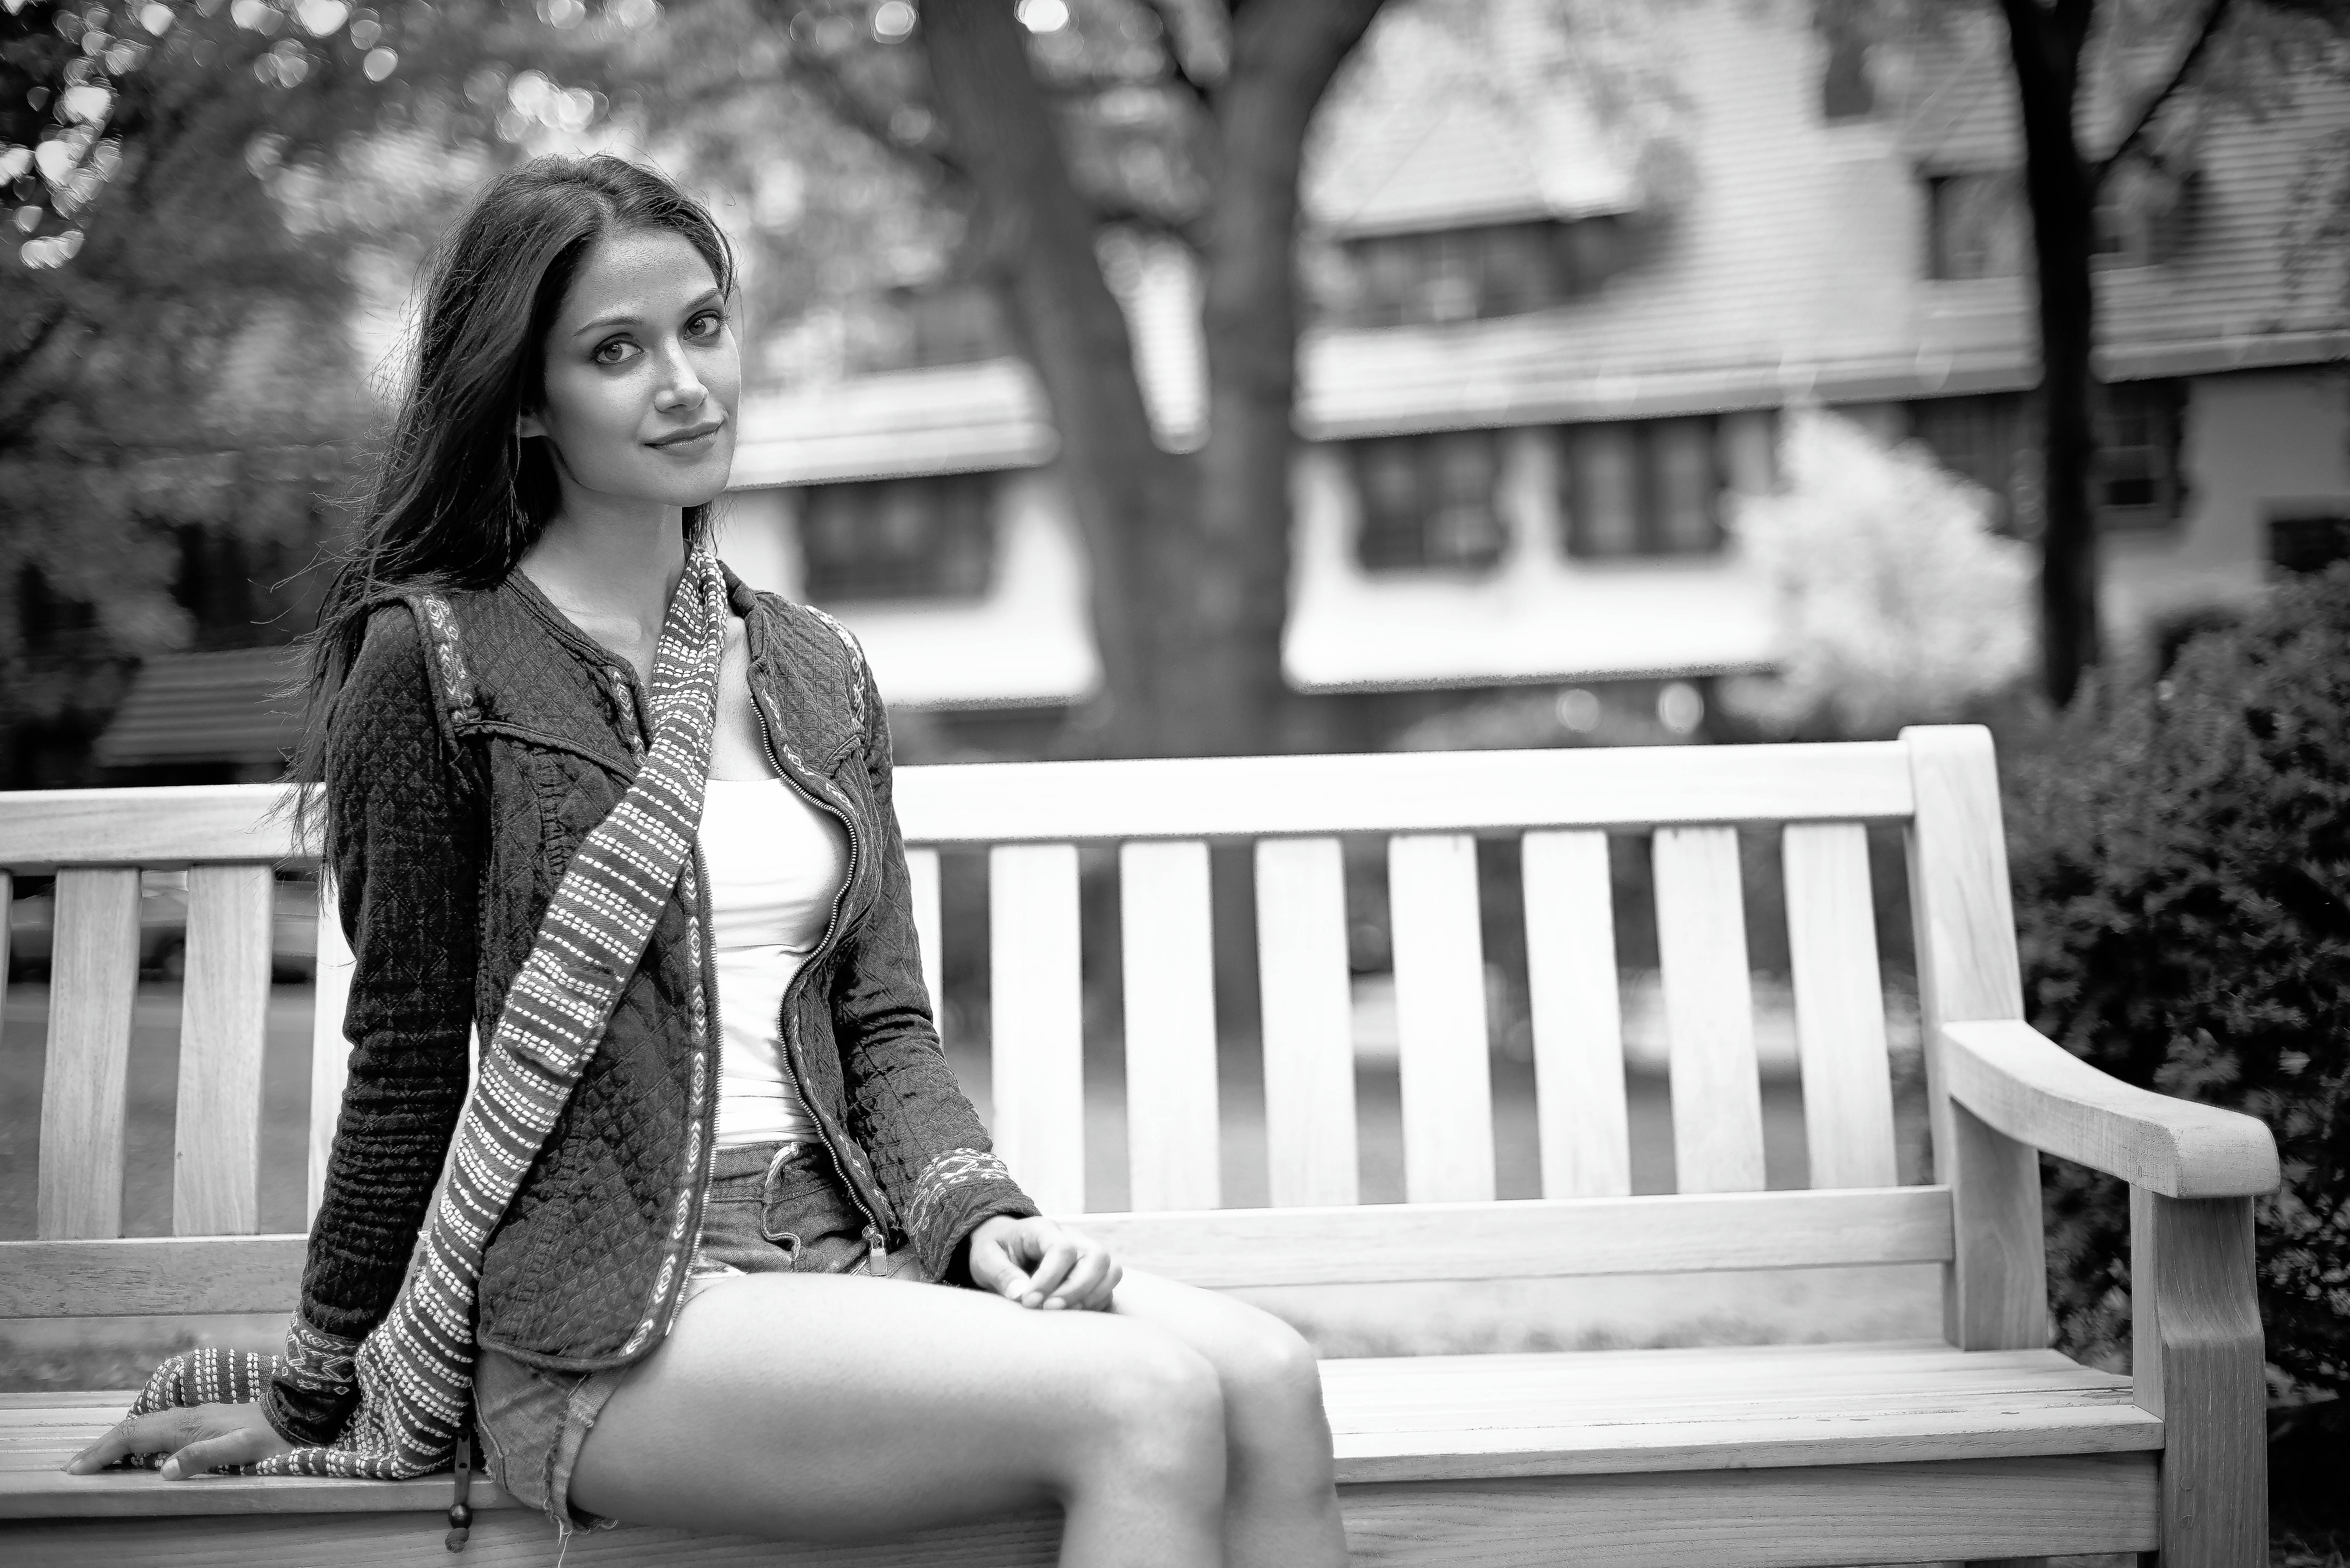 Buffalo Grove native Melanie Chandra has been a model, an engineering student, an actress, an international volunteer and a karate competition winner.